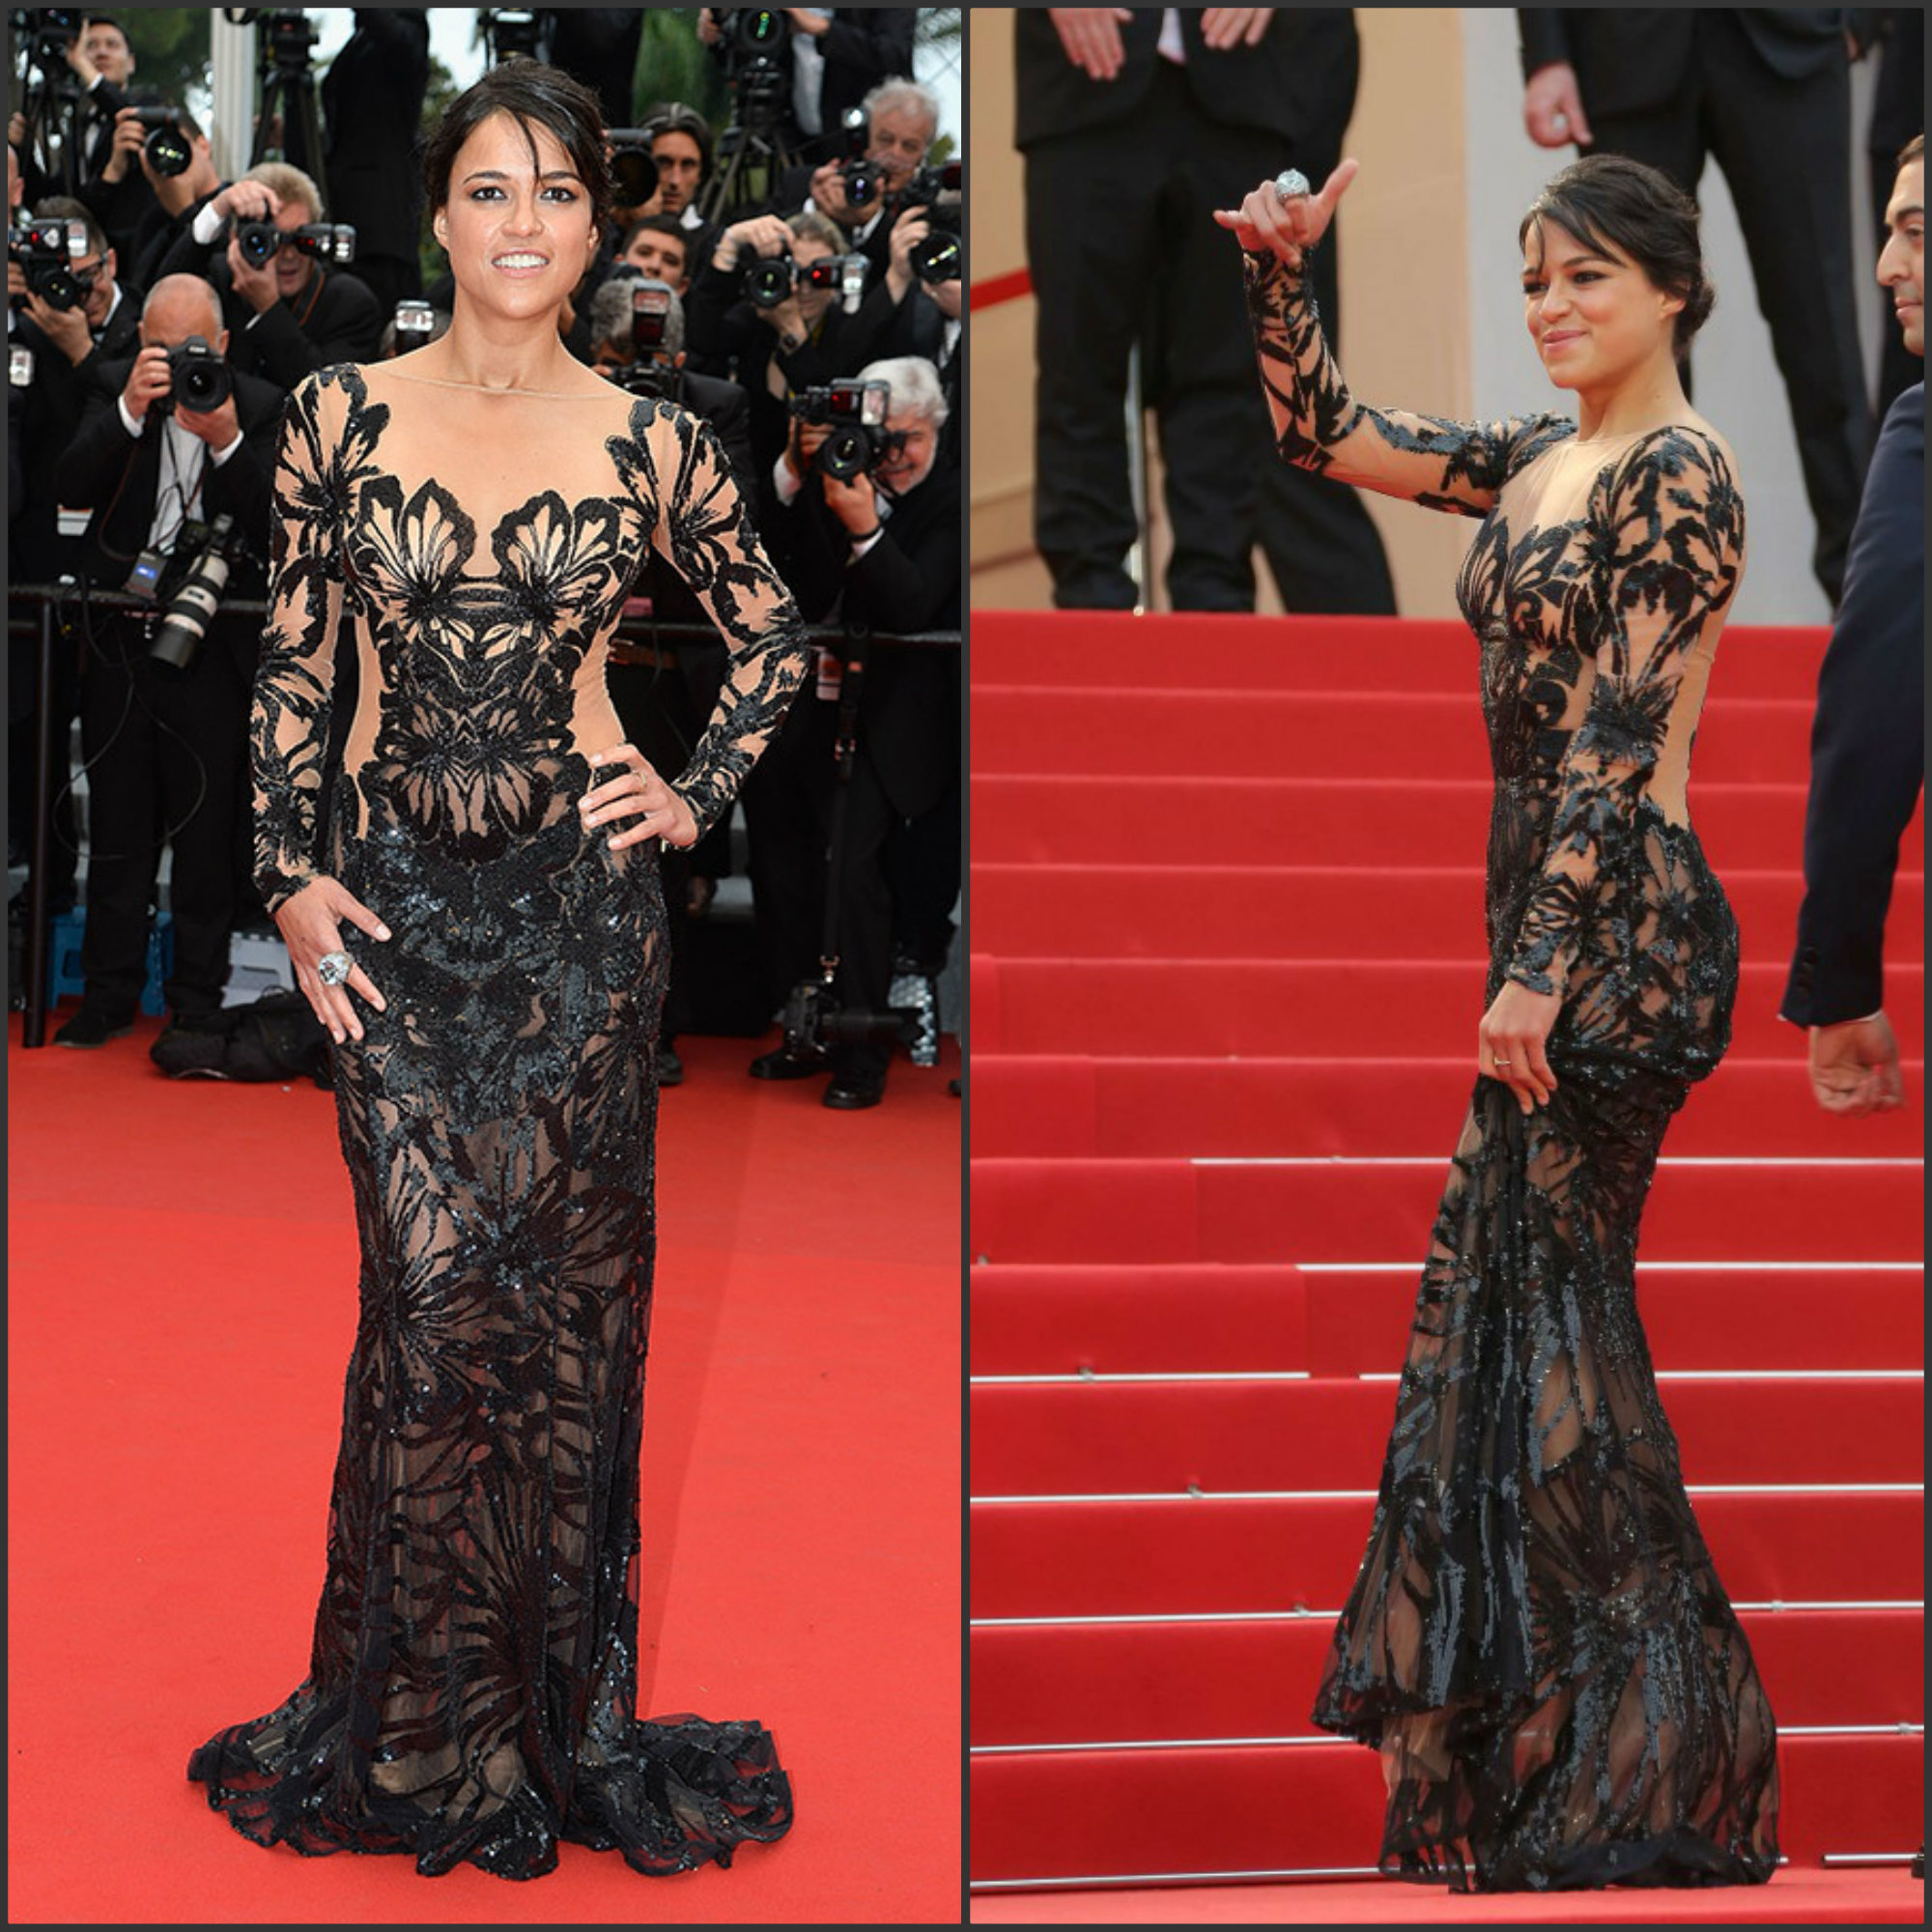 michelle-rodriguez-in-zuhair-murad-at-mad-max-fury-road-cannes-film-festival-premiere